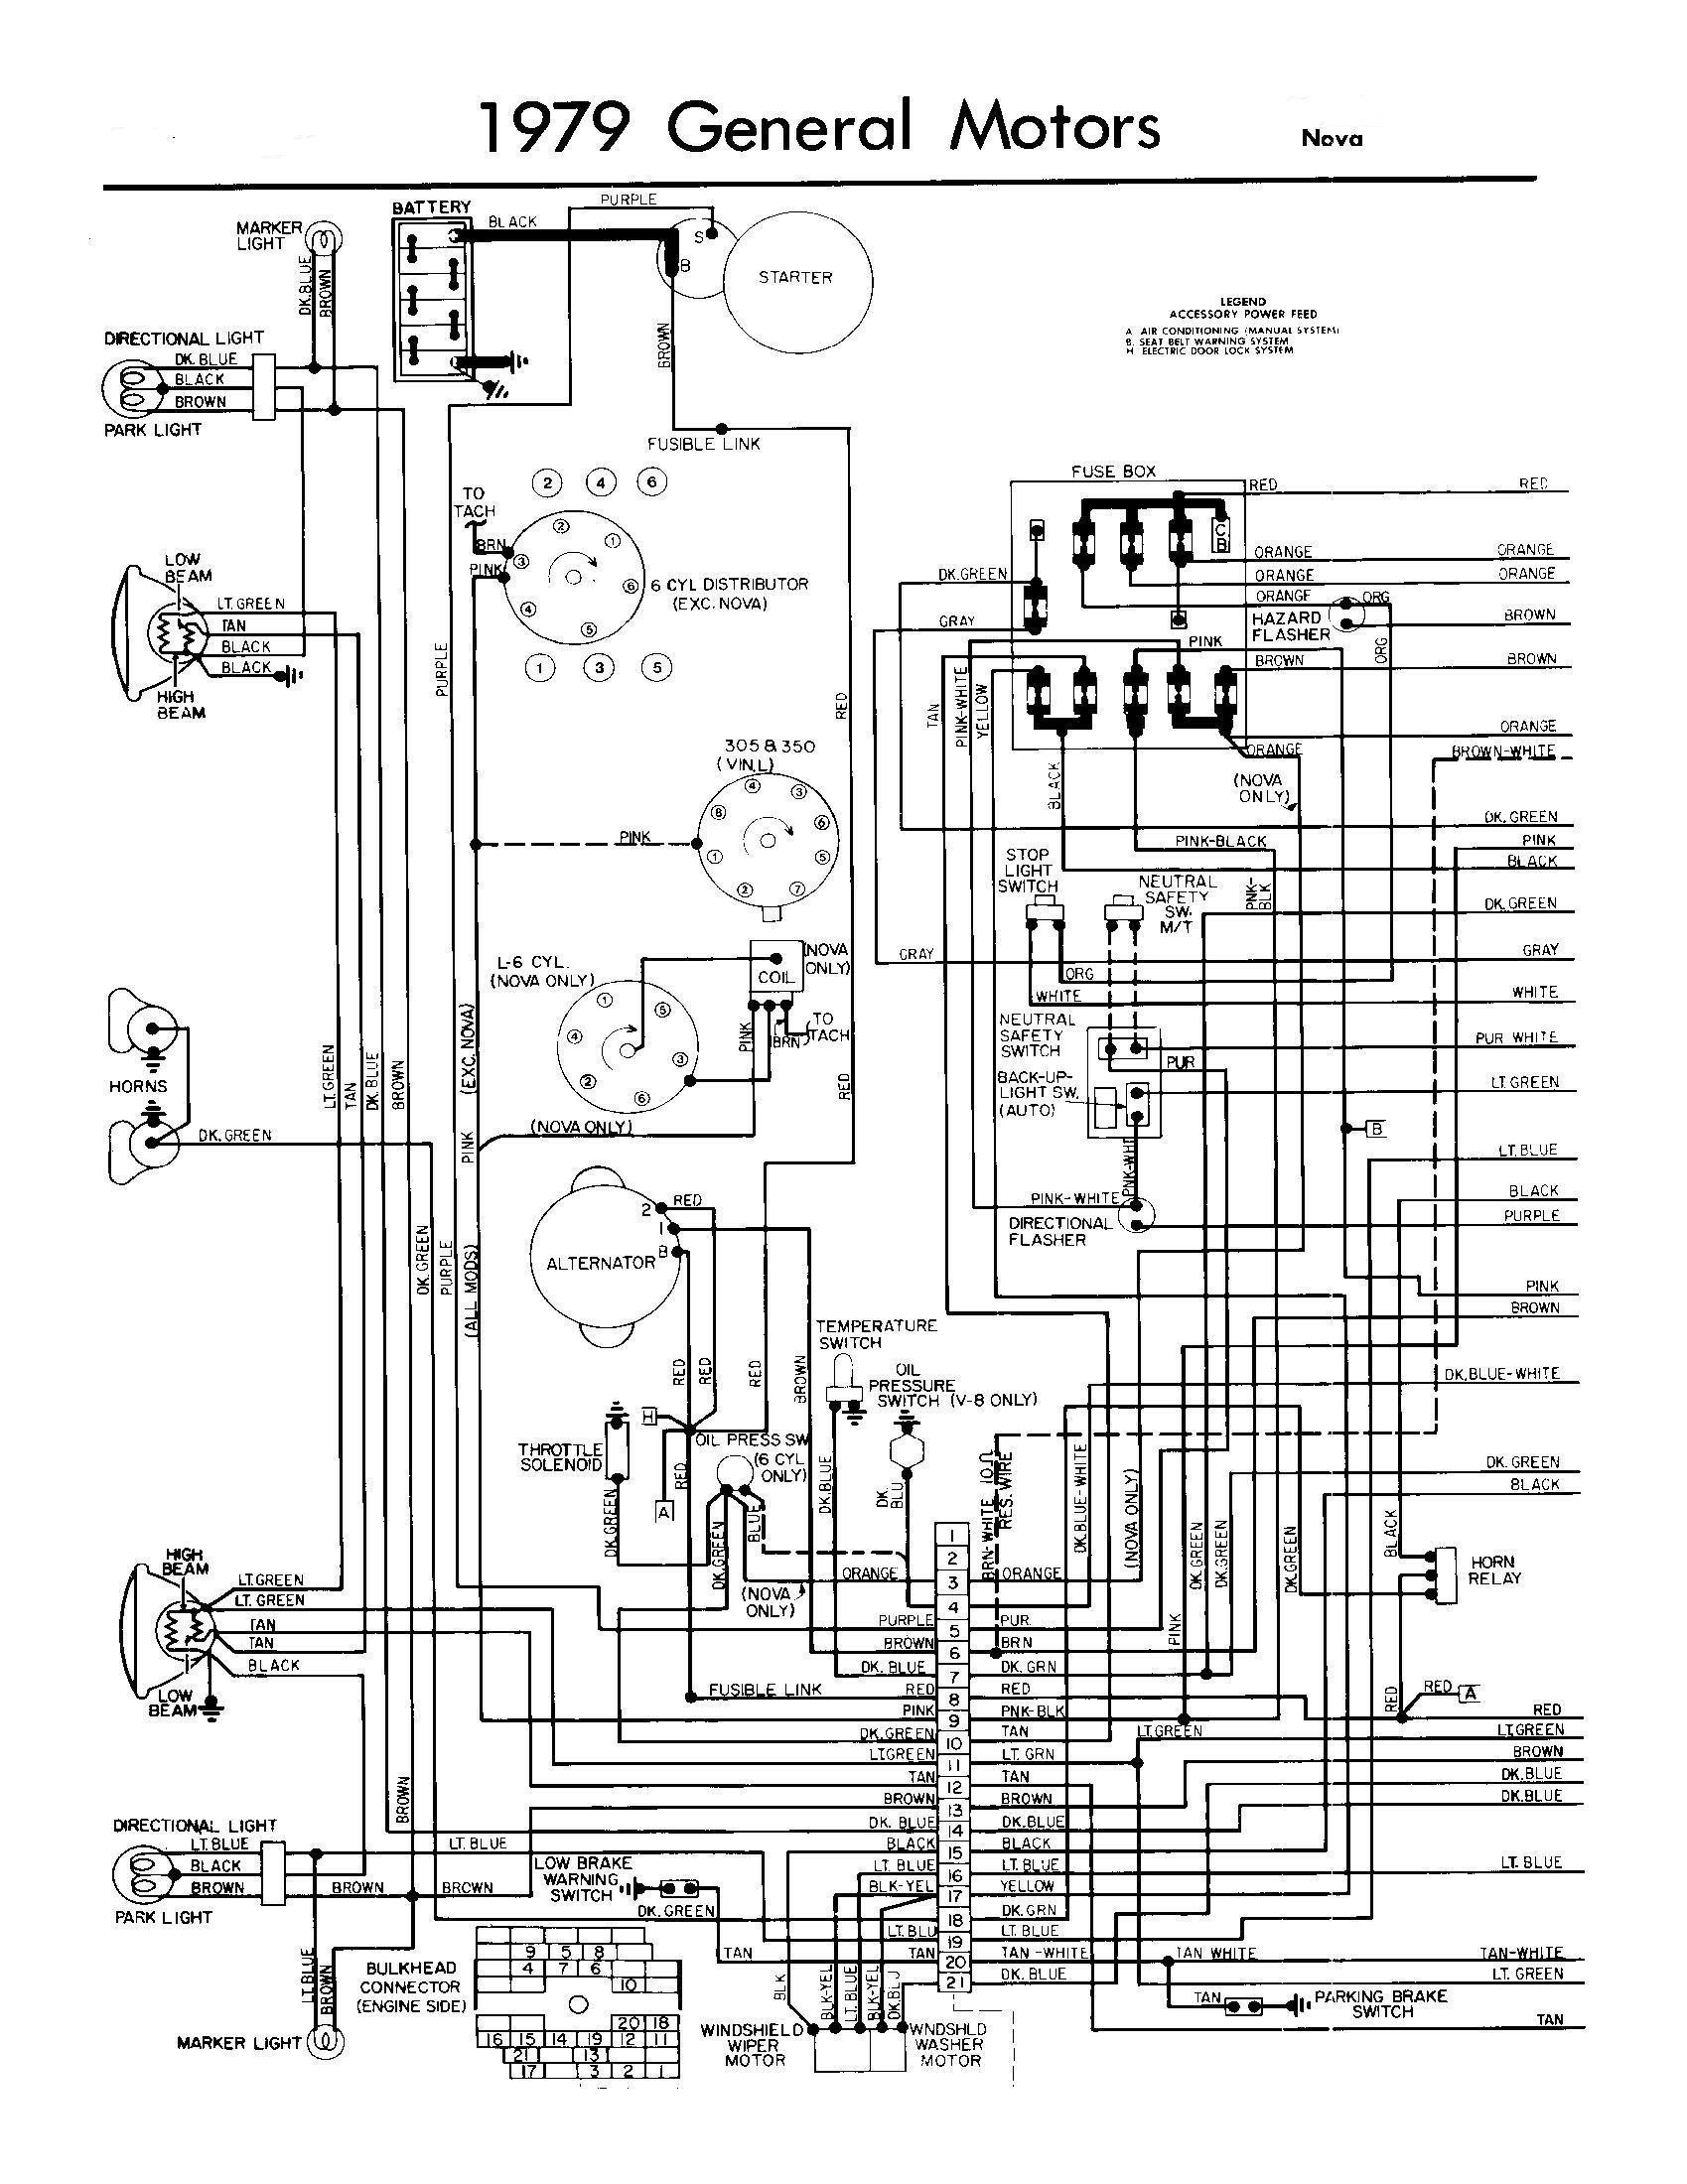 1972 Chevy 350 Ignition Wiring | Wiring Diagram - Chevy 350 Wiring Diagram To Distributor